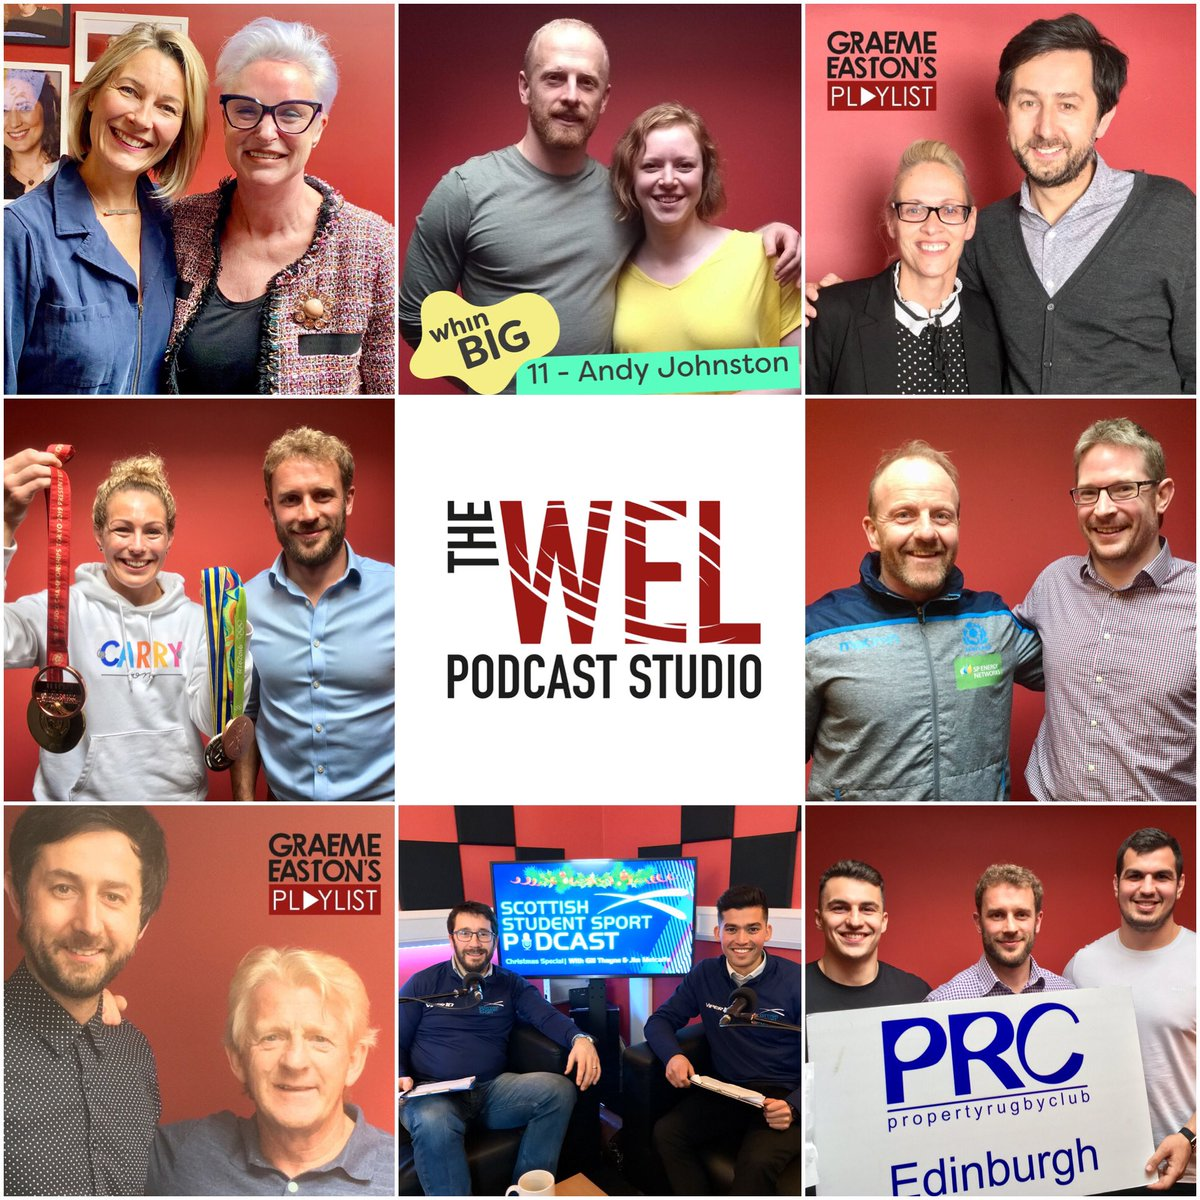 We're very proud of the Podcast Community that is growing out of our Edinburgh studio.   Many fascinating guests have graced our sofas.   Join them.  http://www.thewel.co.uk  #podcaststudio  #Edinburgh  #BeHeard #podcast  #podcaster  #ScotlandIsNow #podcastcommunity pic.twitter.com/brPGJ2FsN8